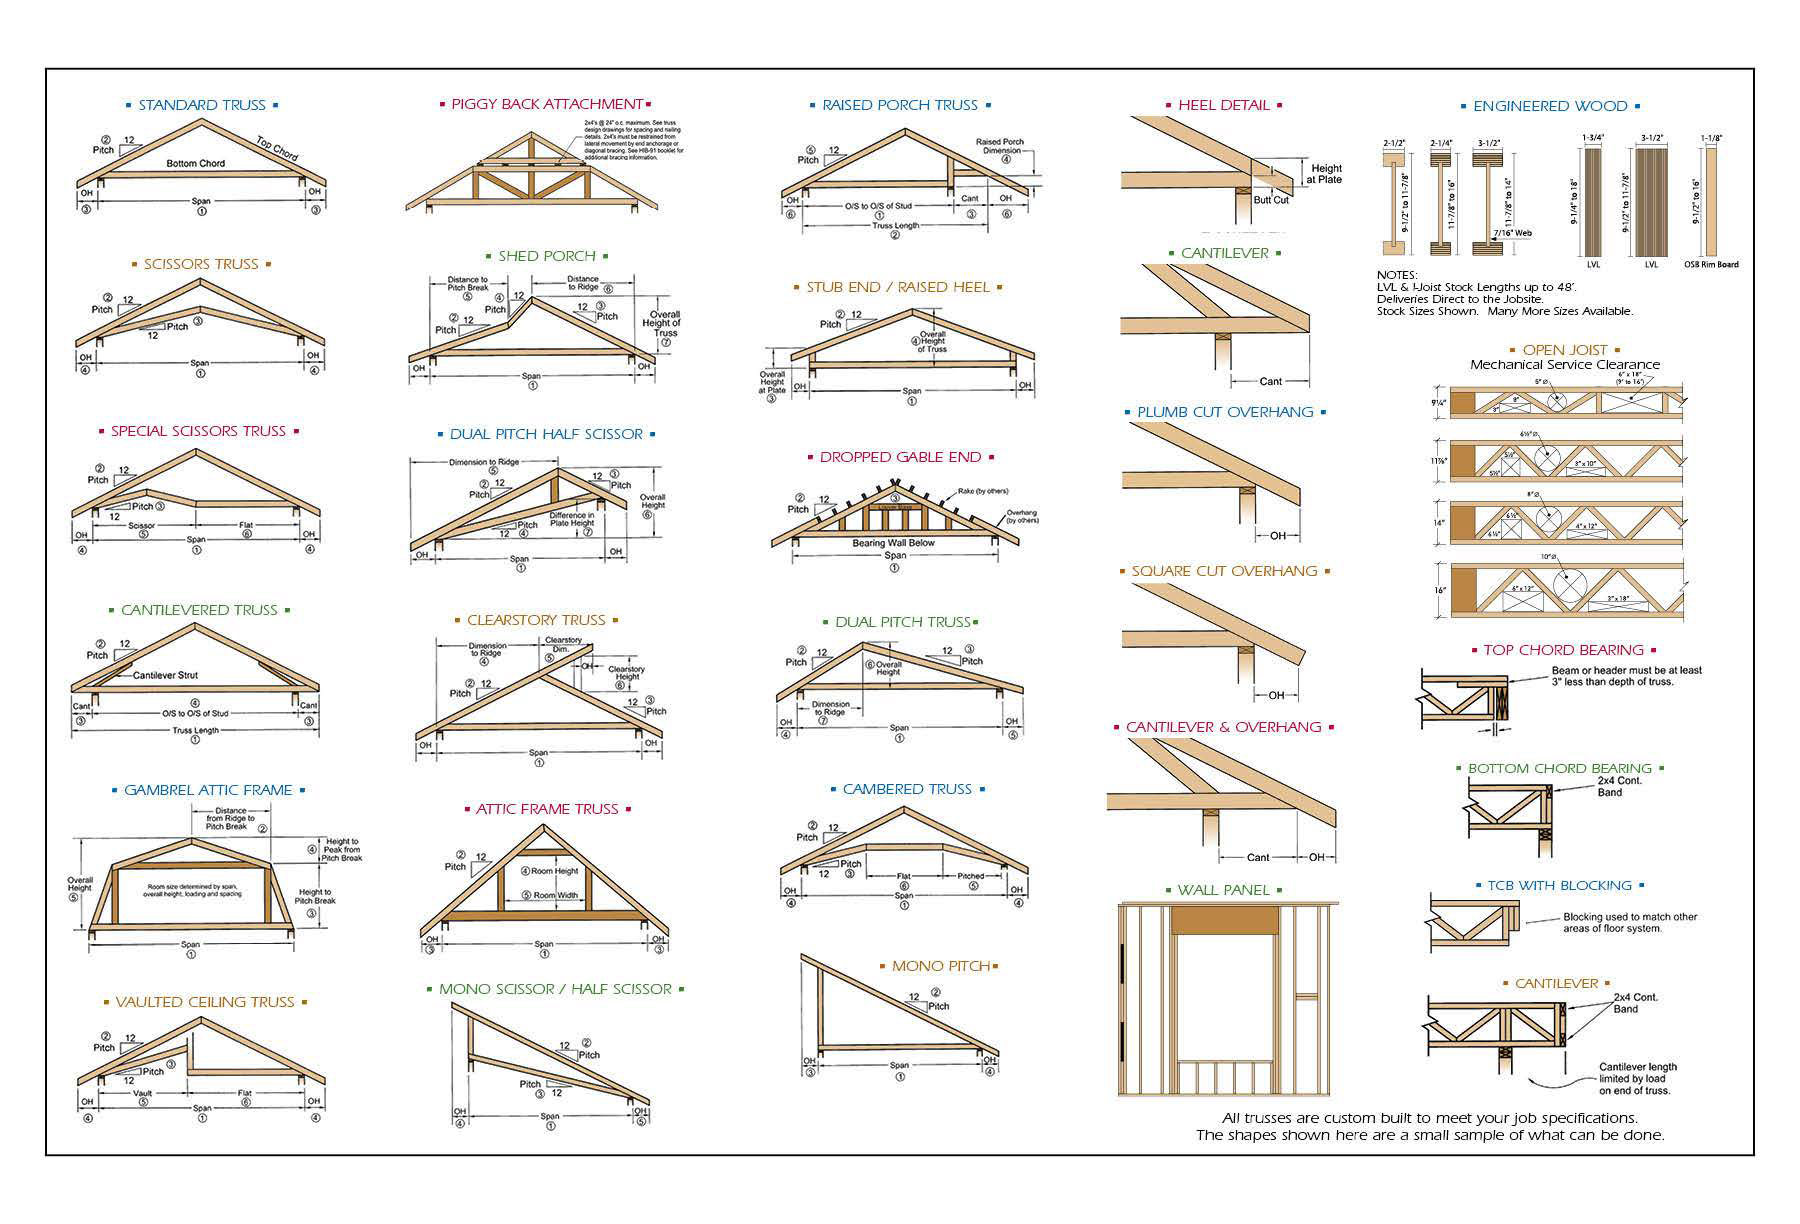 Vaulted Ceiling Truss Www Energywarden Net